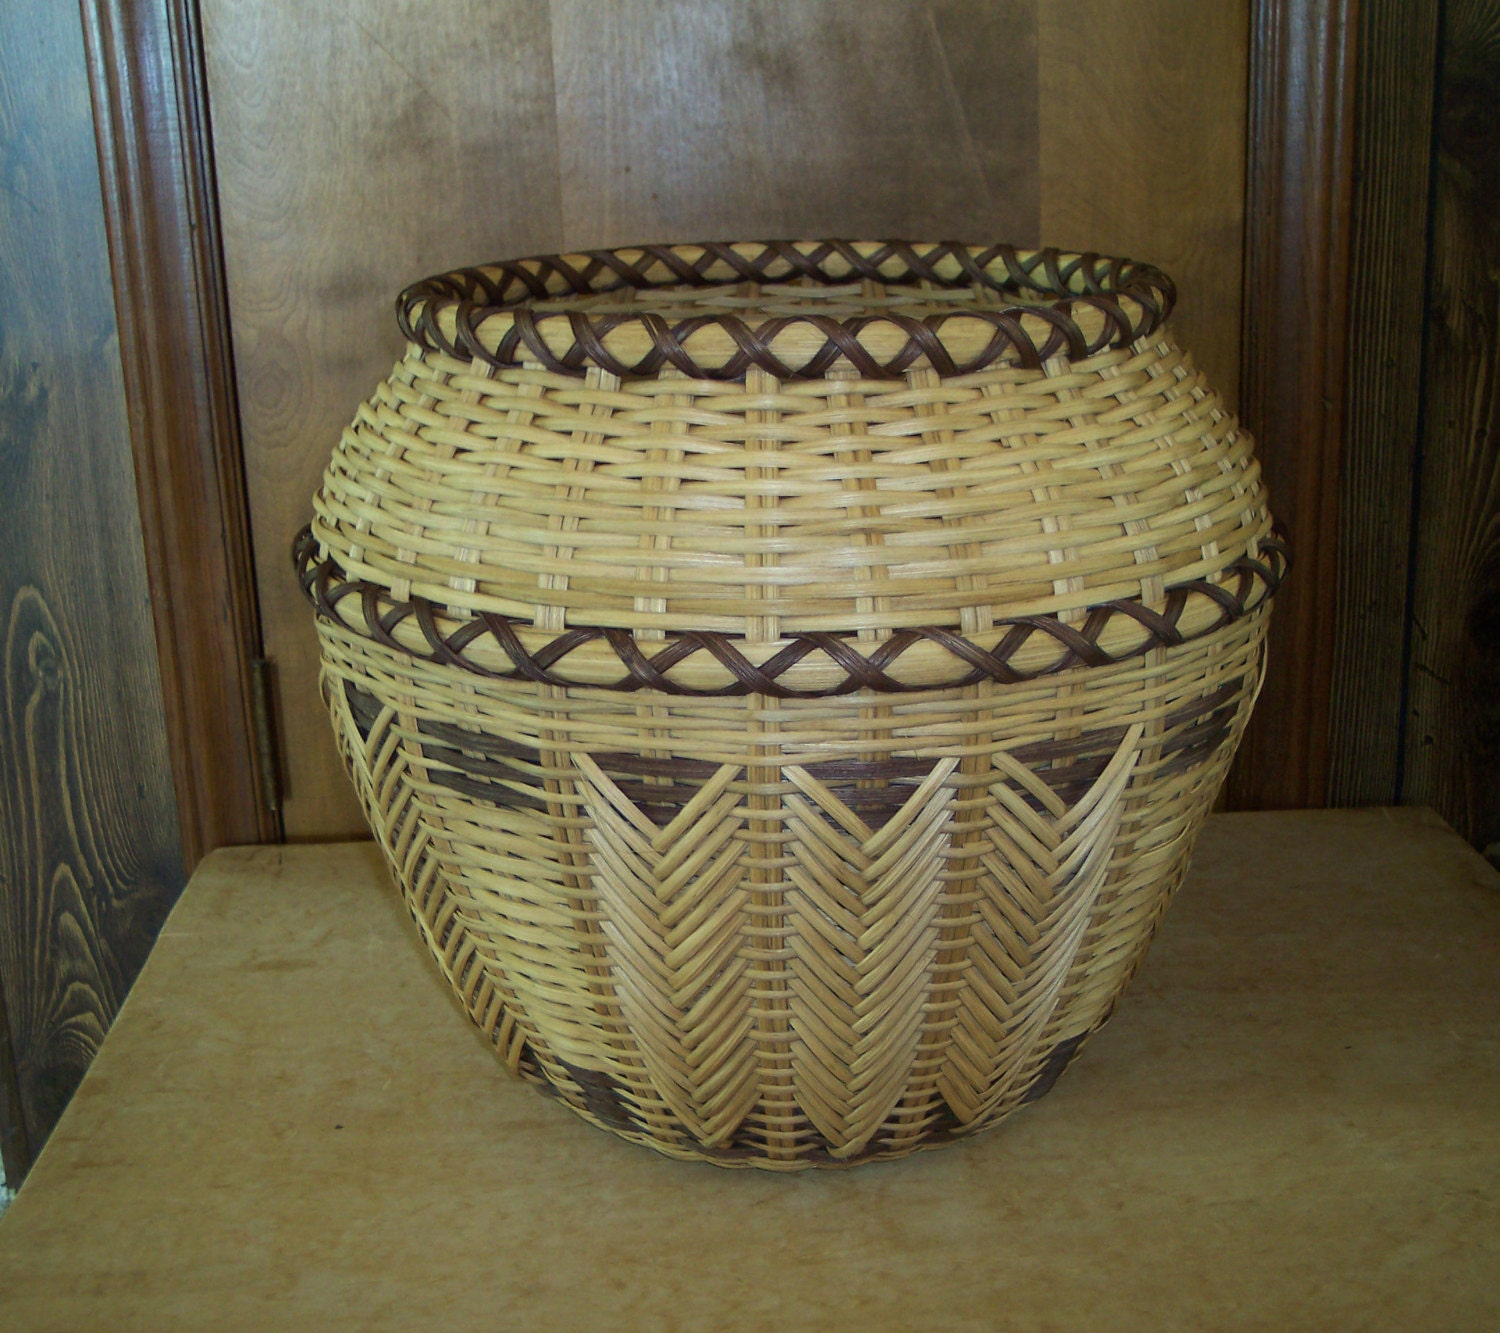 Basket Weaving Supplies And Kits : Basket weaving kit make a corn